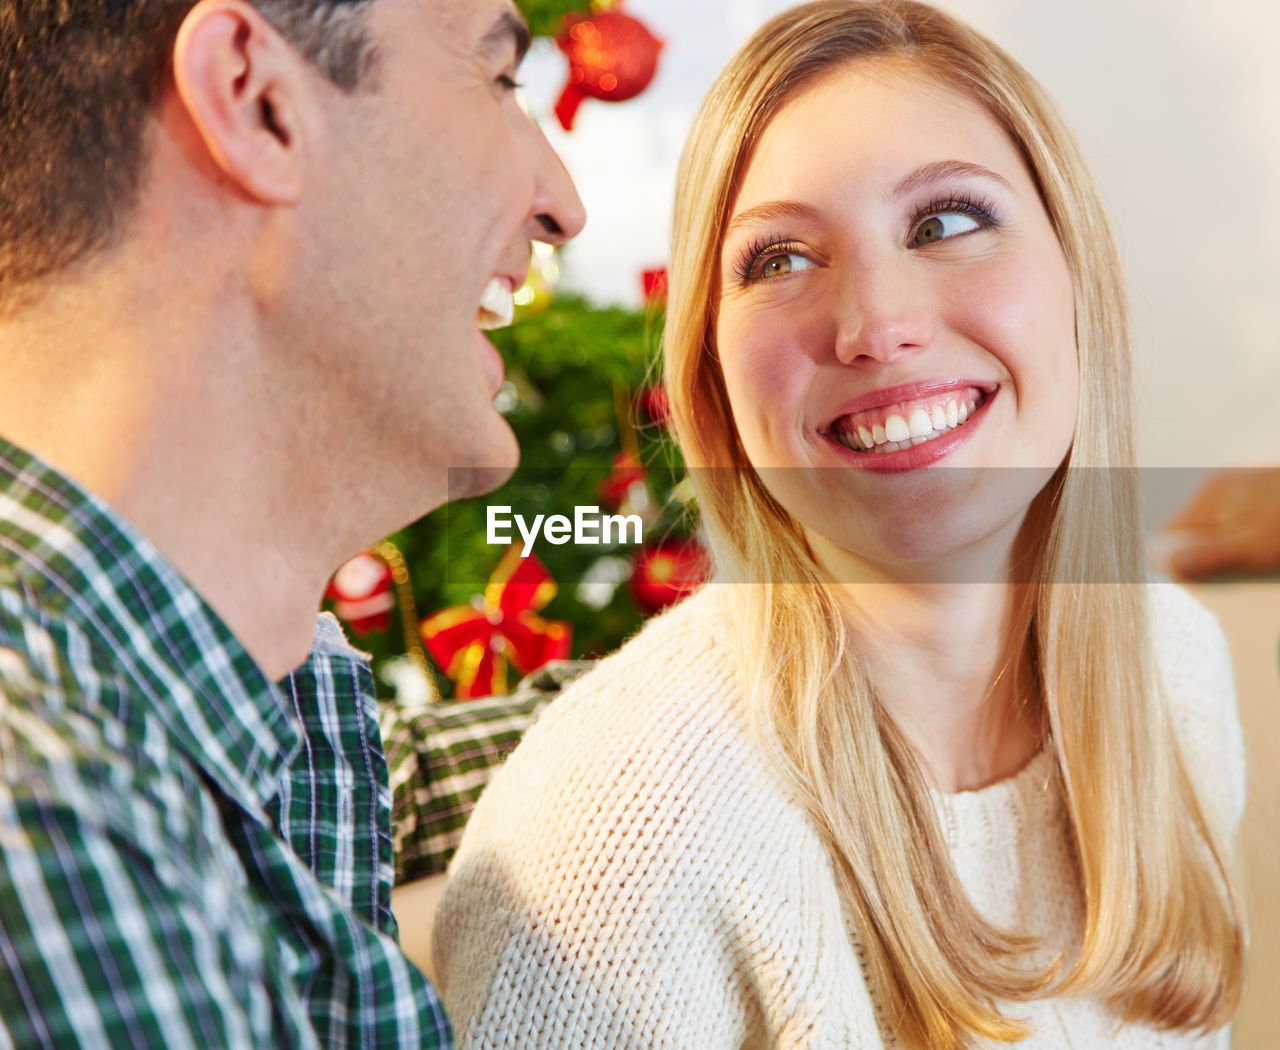 two people, smiling, emotion, happiness, togetherness, love, young adult, couple - relationship, men, portrait, positive emotion, young women, adult, women, headshot, heterosexual couple, bonding, casual clothing, toothy smile